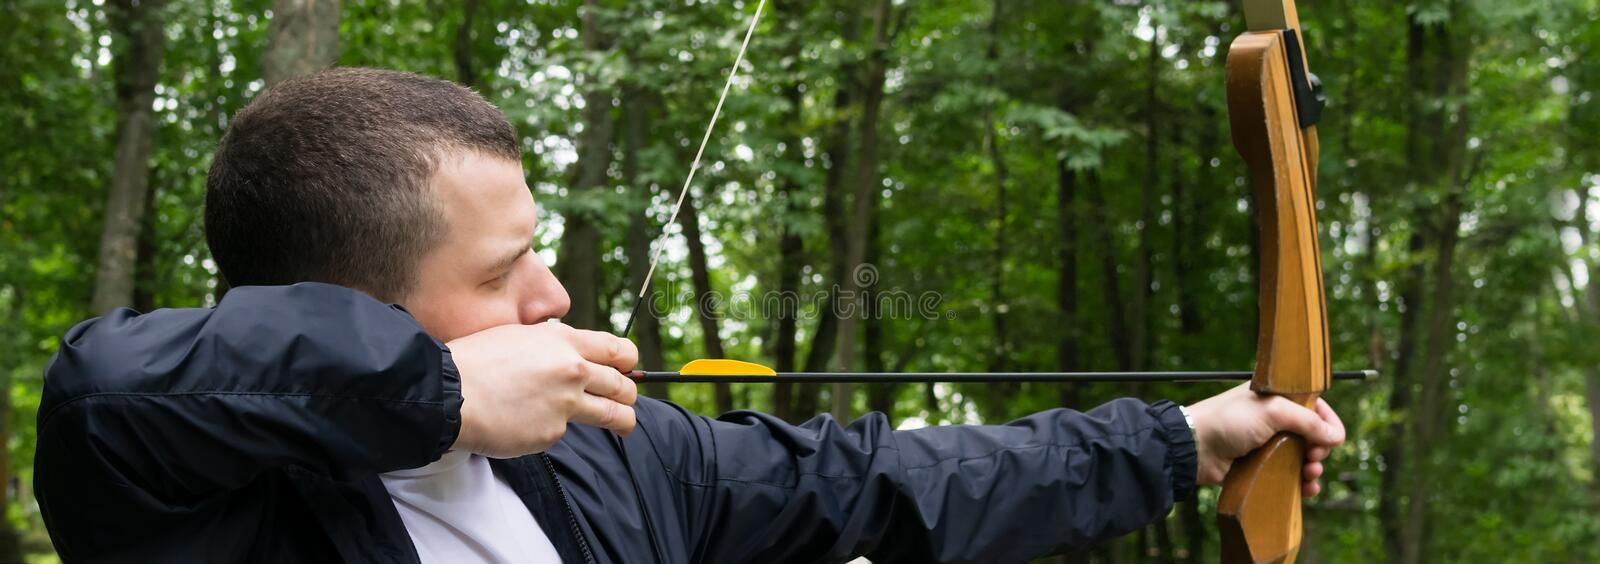 Man pulls a bow string for a shot in the forest, close-up, long photo stock photo